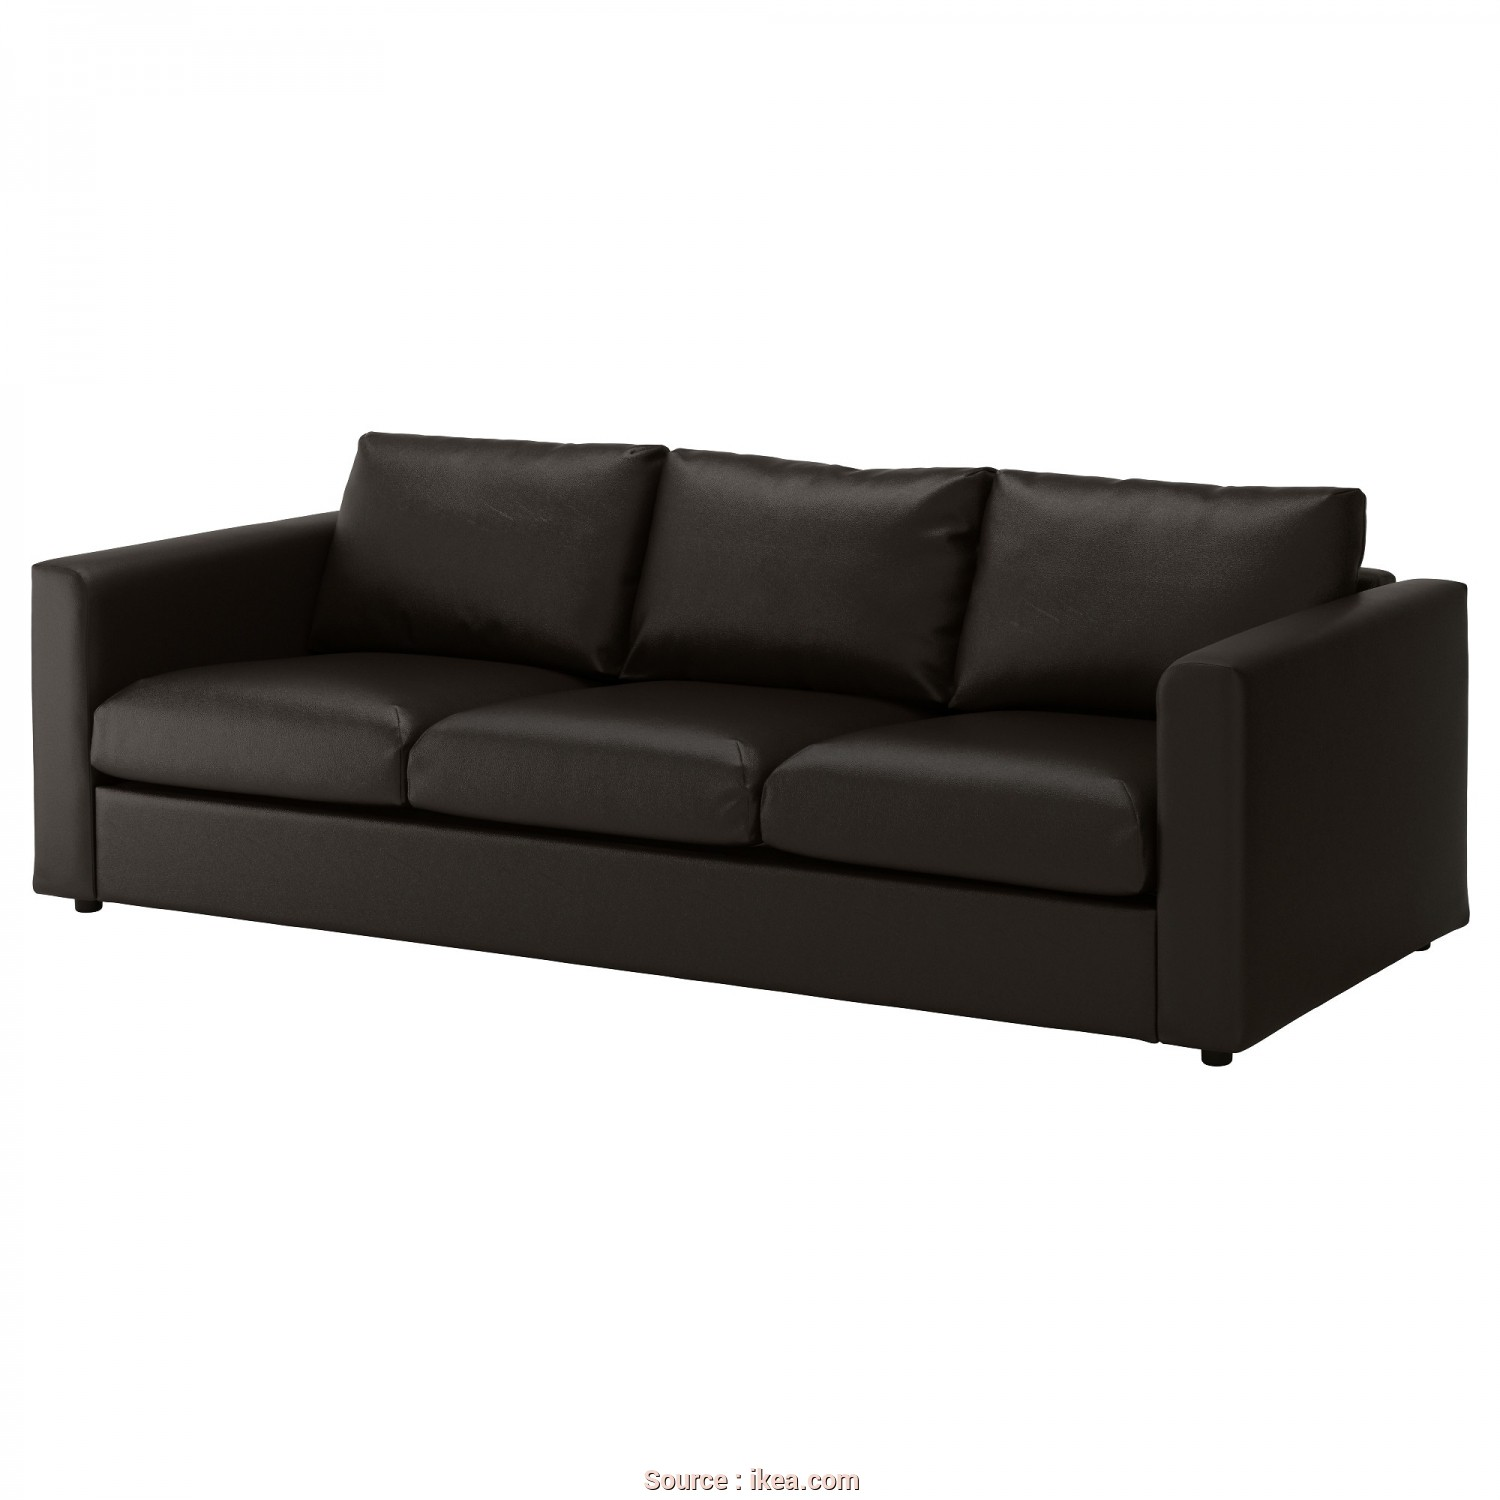 Ikea Klippan 3 Seater Sofa Dimensions, Divertente IKEA VIMLE 3-Seat Sofa, Cover Is Easy To Keep Clean As It Can